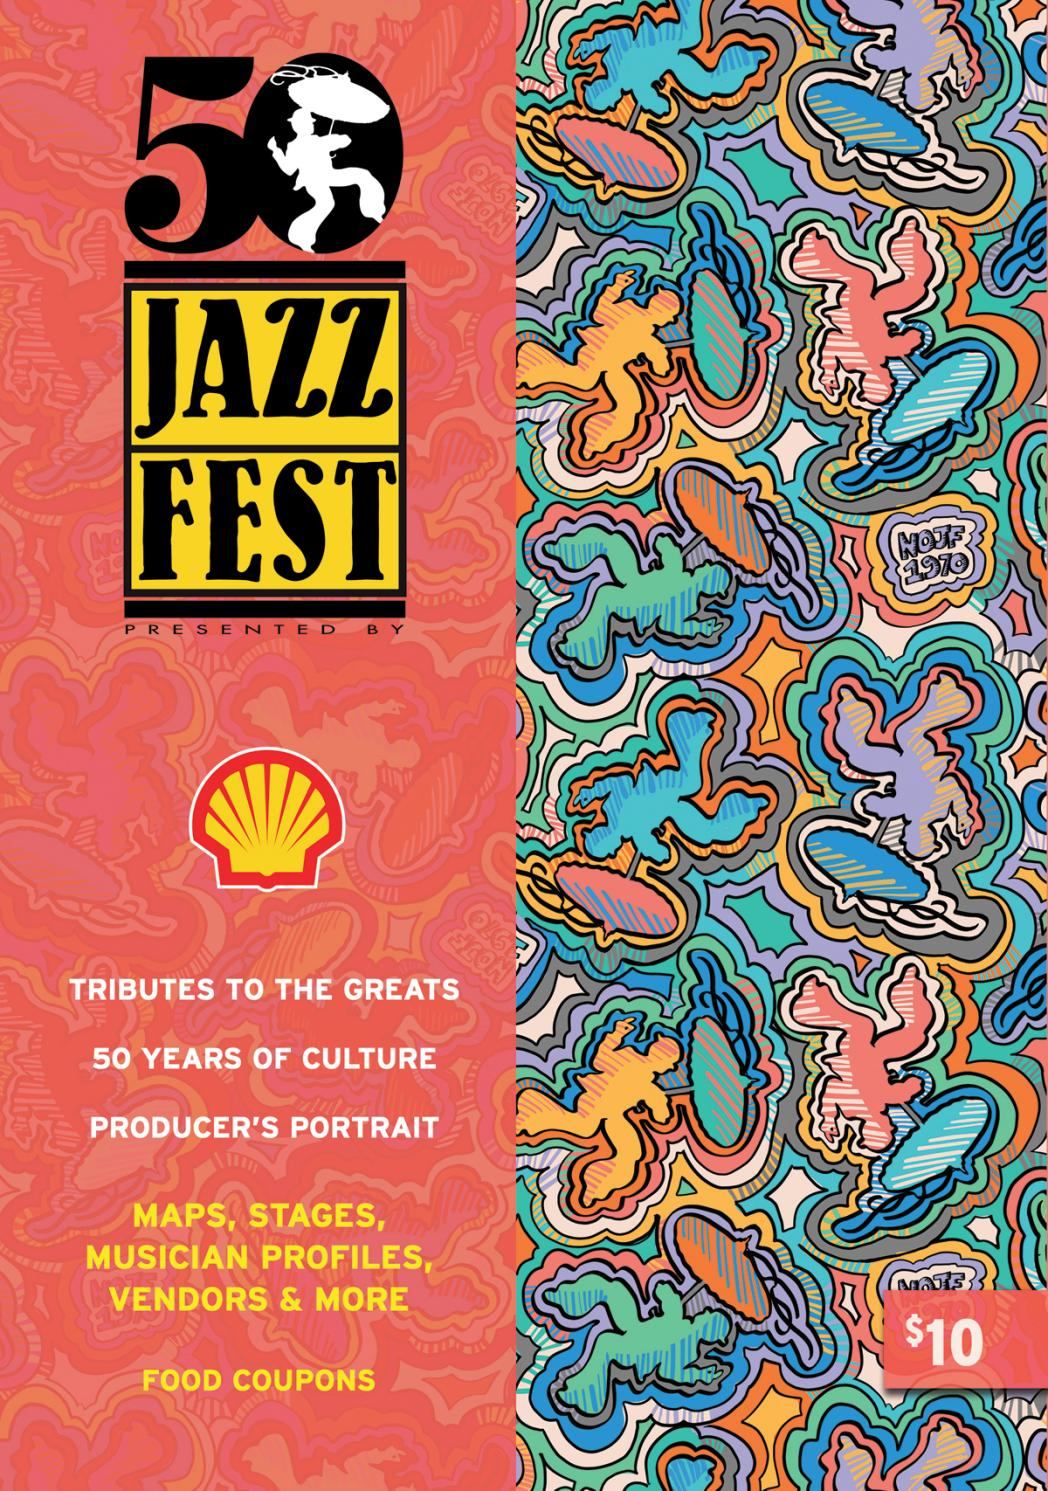 aee273f3db New Orleans Jazz and Heritage Festival Program 2019 by Renaissance ...